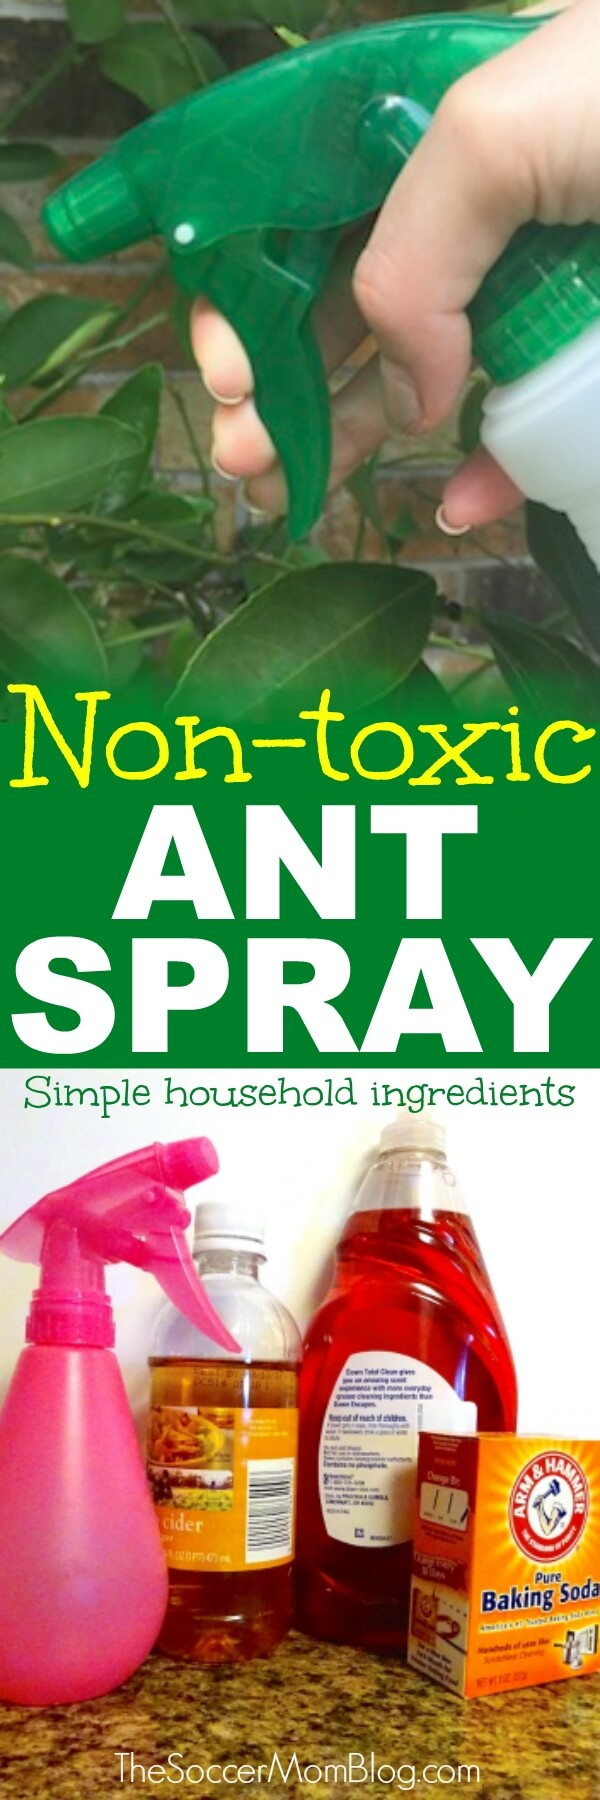 Forget harsh chemicals! This DIY natural ant killer is safe, easy, cheap, and IT WORKS! Safe for use around children and pets.